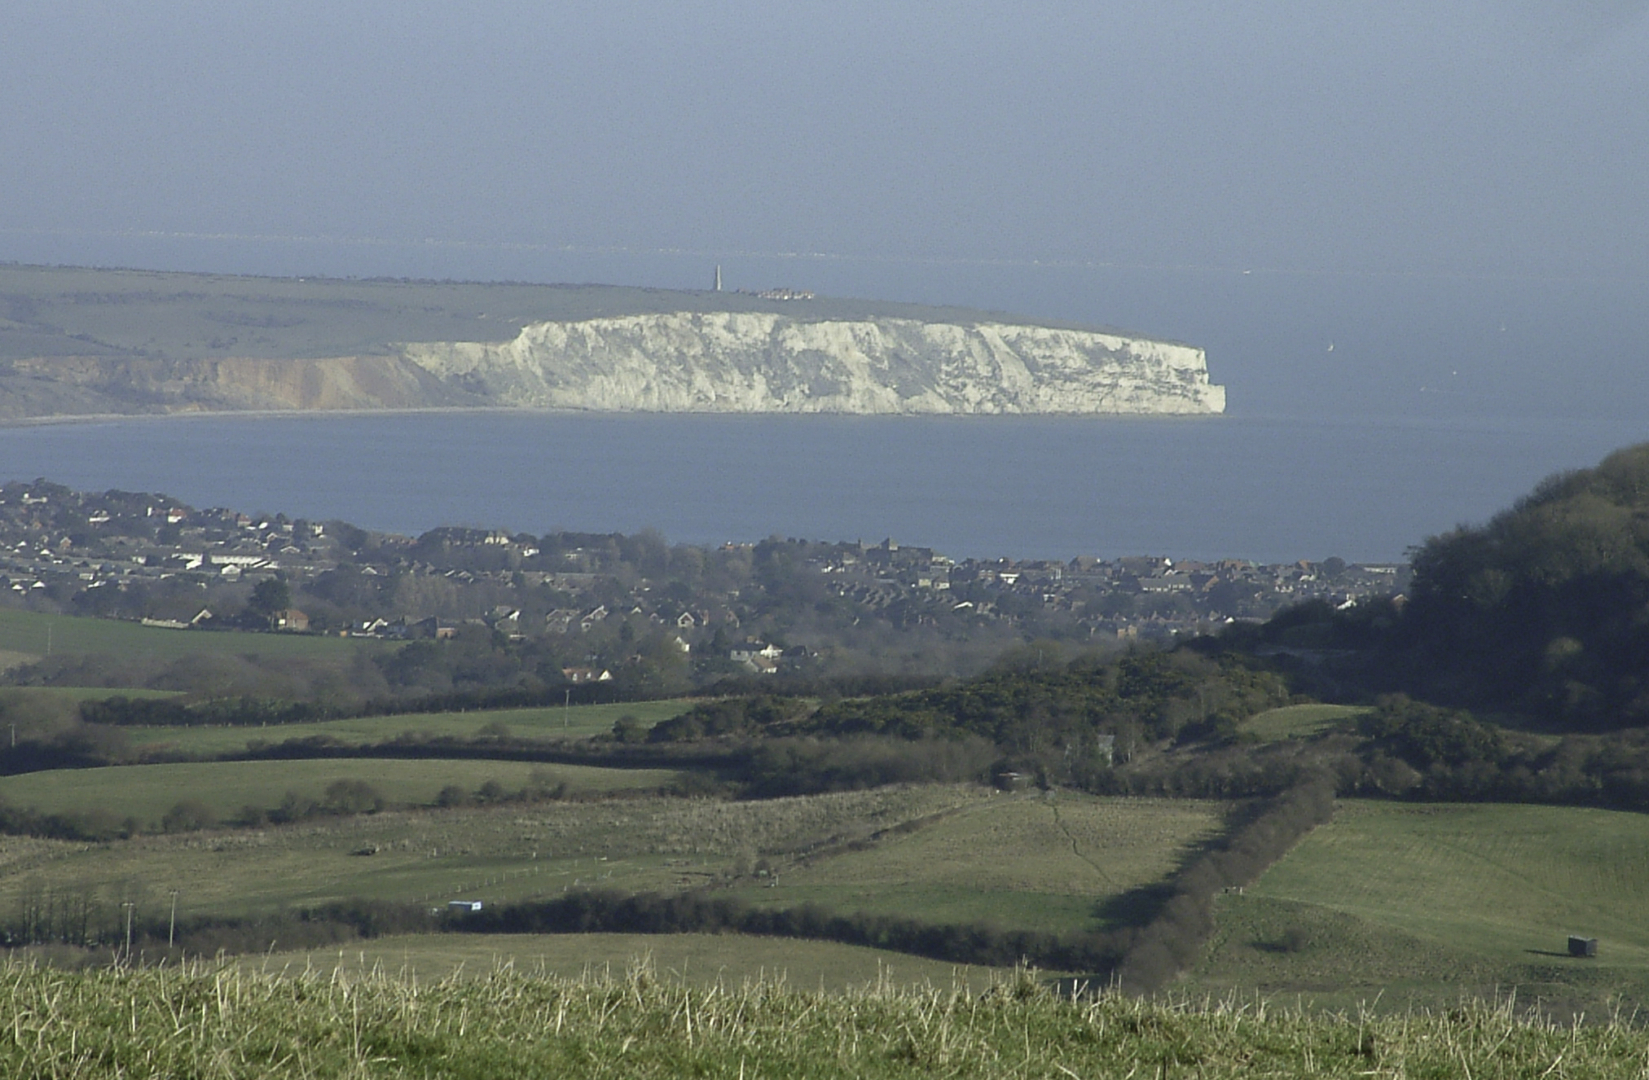 View-3-Looking-East-to-Sandown-Bay-From-Repeater-Site-at-Stenbury-Jan-2006